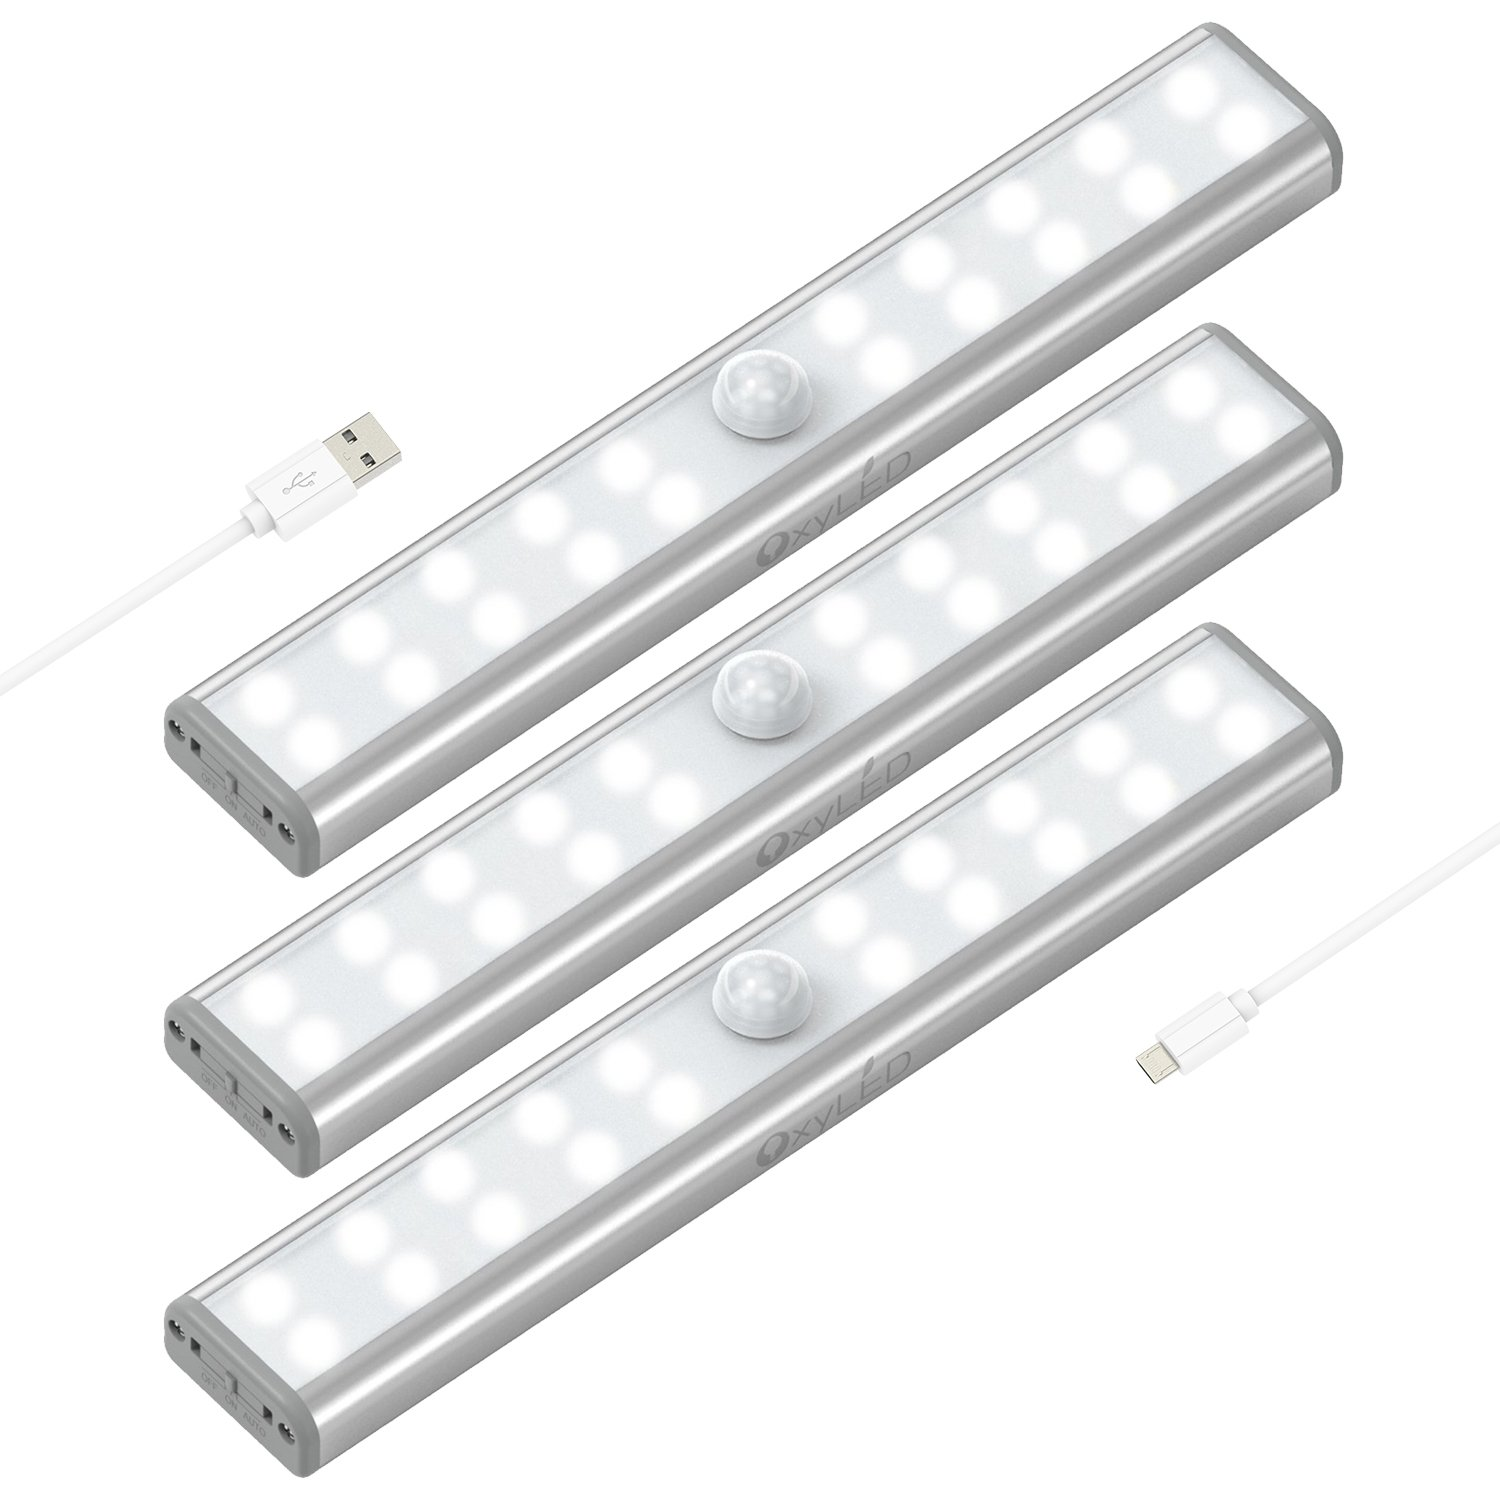 Wardrobe Light, OxyLED Motion Sensor Closet Lights, 20 LED Under Cabinet Lights, USB Rechargeable Stick-on Stairs Step Light Bar, LED Night Light, Safe Light with Magnetic Strip, 3-Pack, T-02U